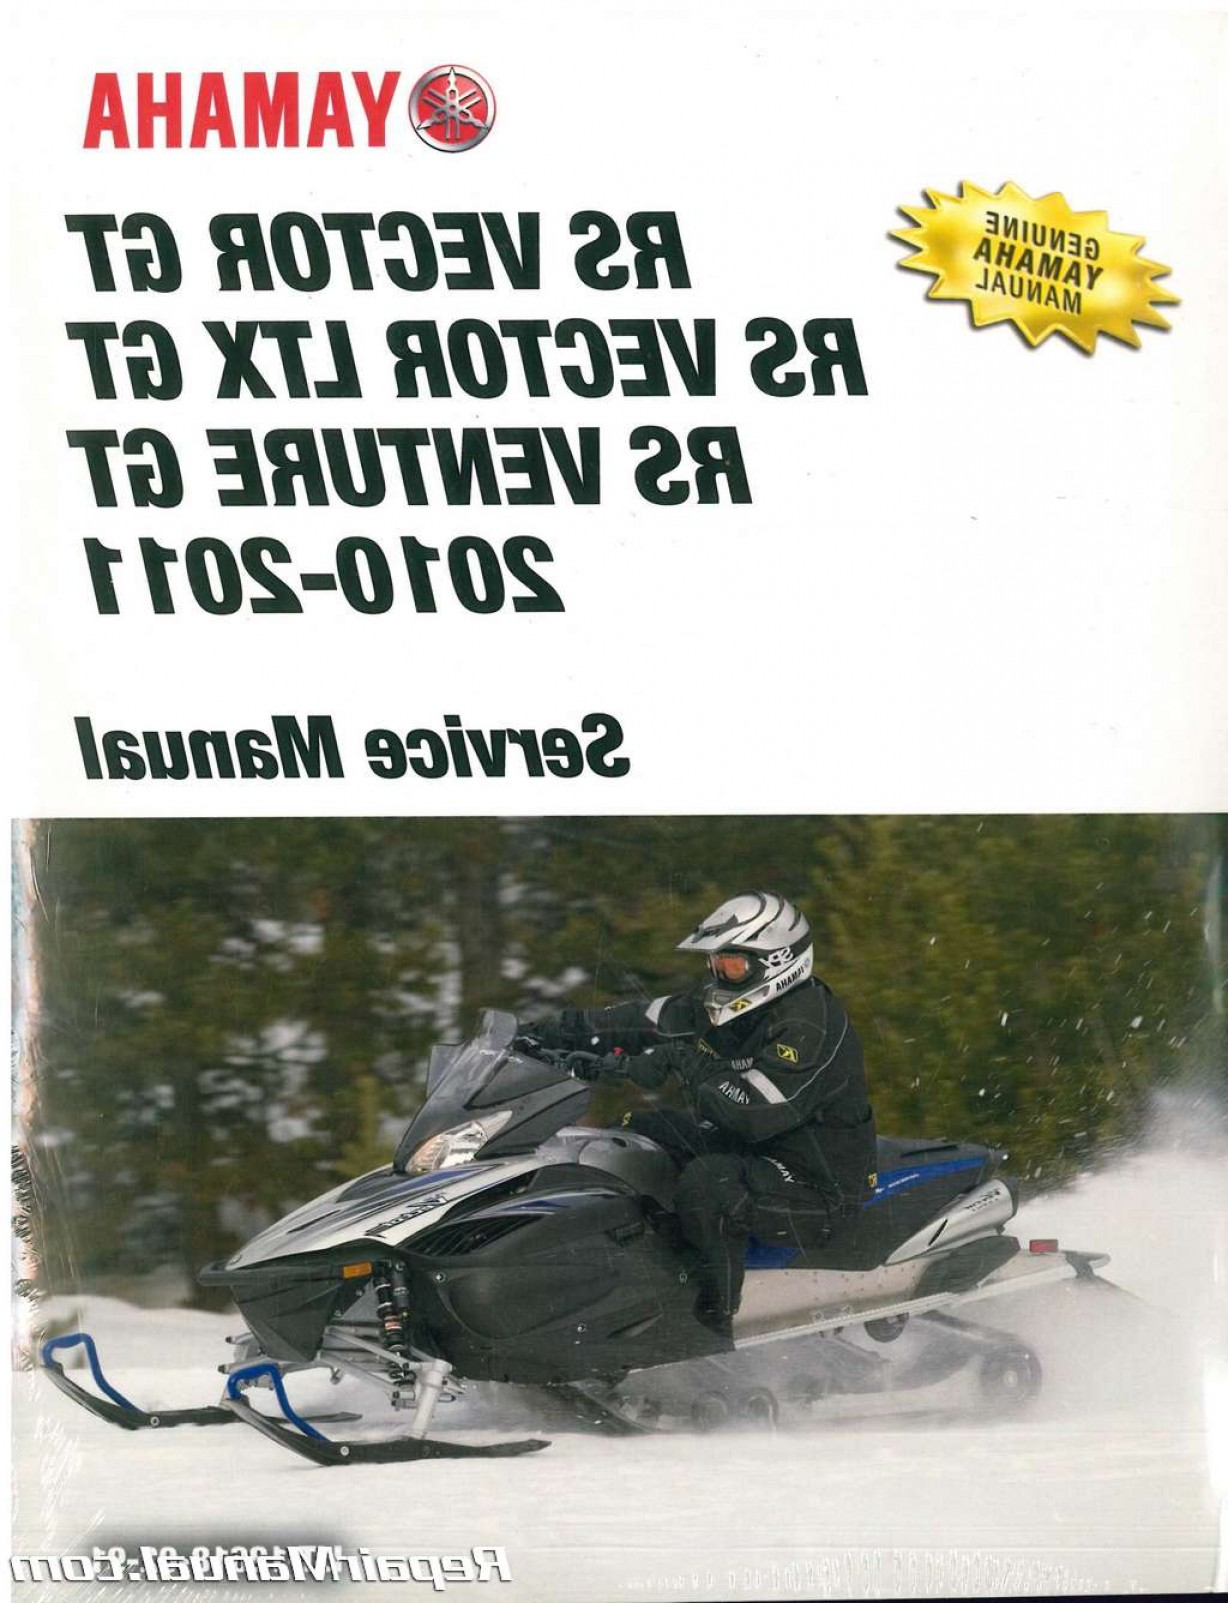 2011 Yamaha Vector Black: Official Yamaha Rs Vector Gt Ltx Gt Rs Venture Gt Snowmobile Factory Service Manual Lit